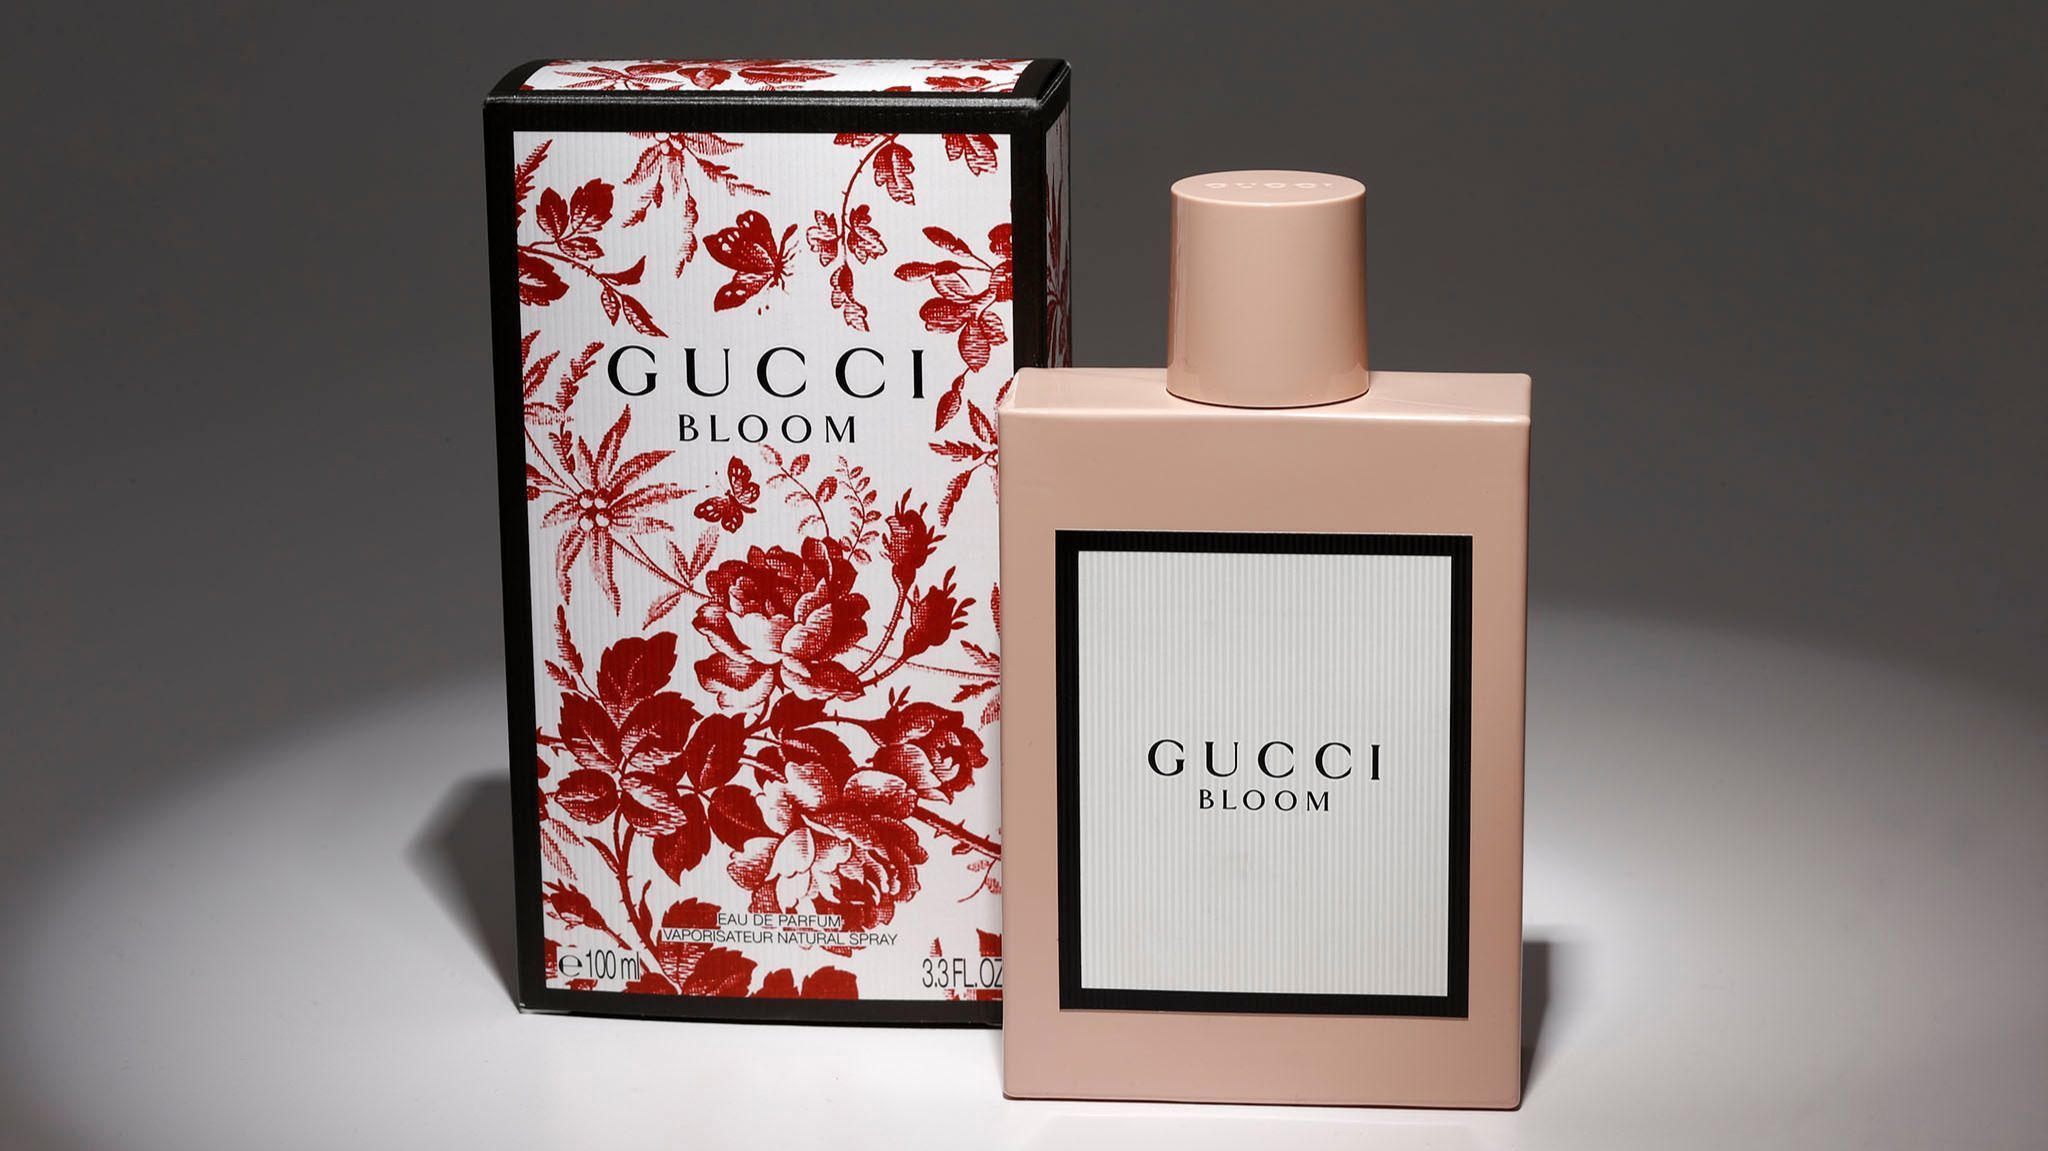 Guccis New Bloom Alessandro Micheles First Fragrance To Debut